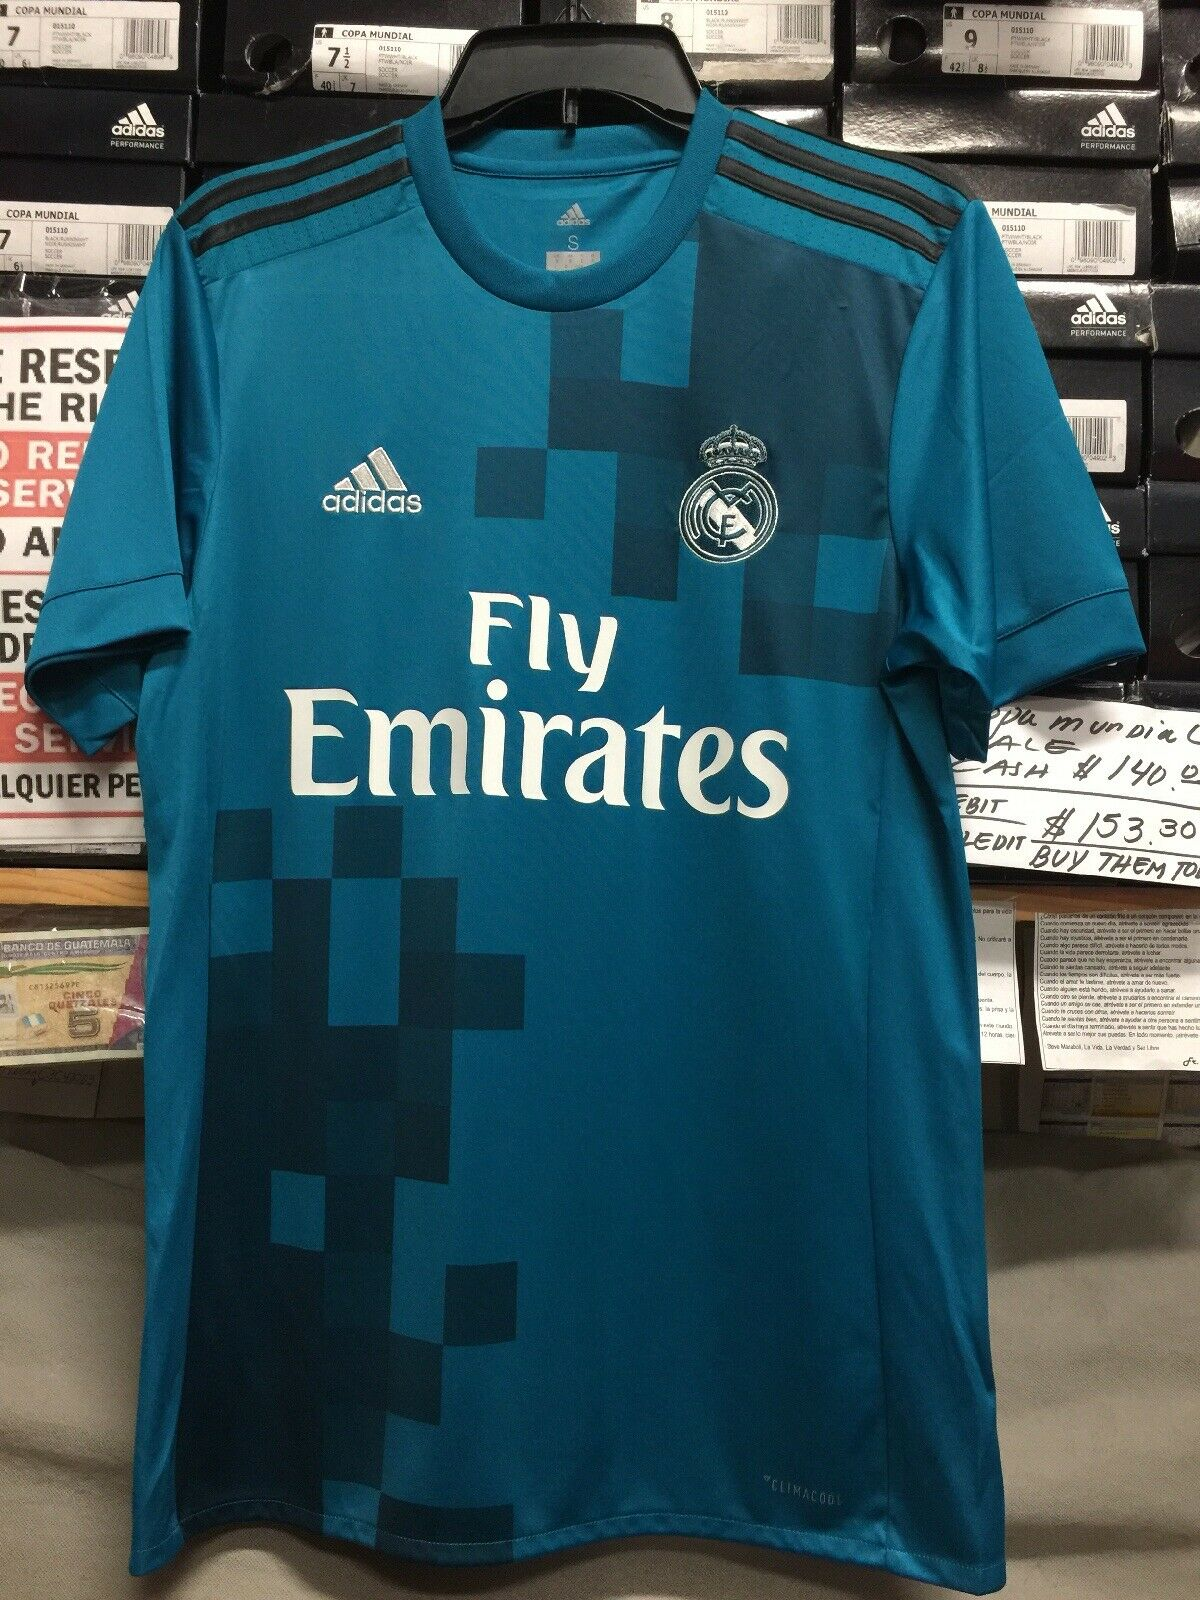 adidas Real Madrid 3rd 2017-18 Soccer Jersey Teal Dark Blue Size S ...